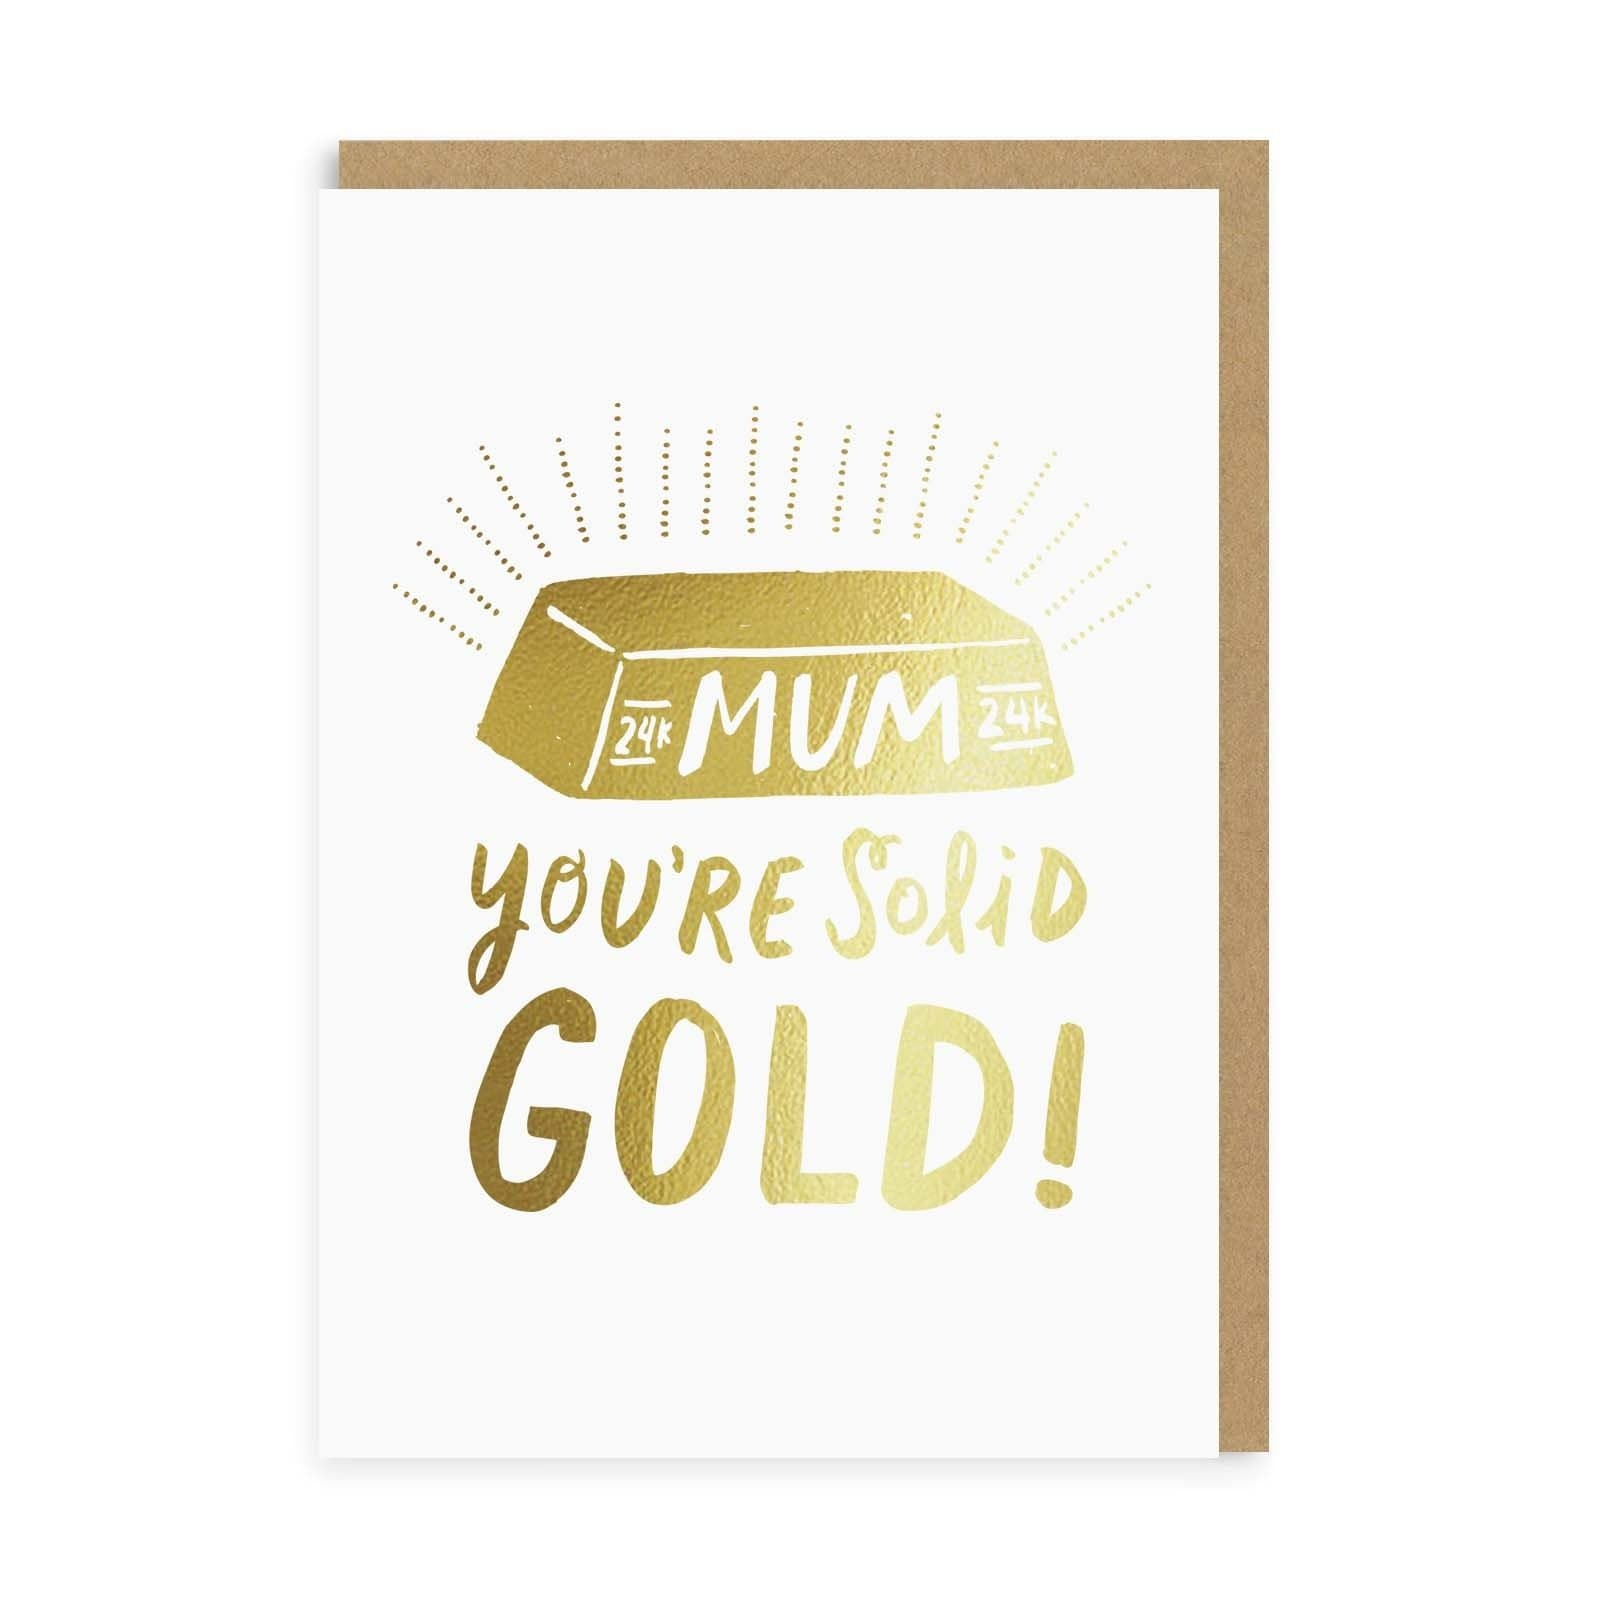 Mum You're Solid Gold Greeting Card